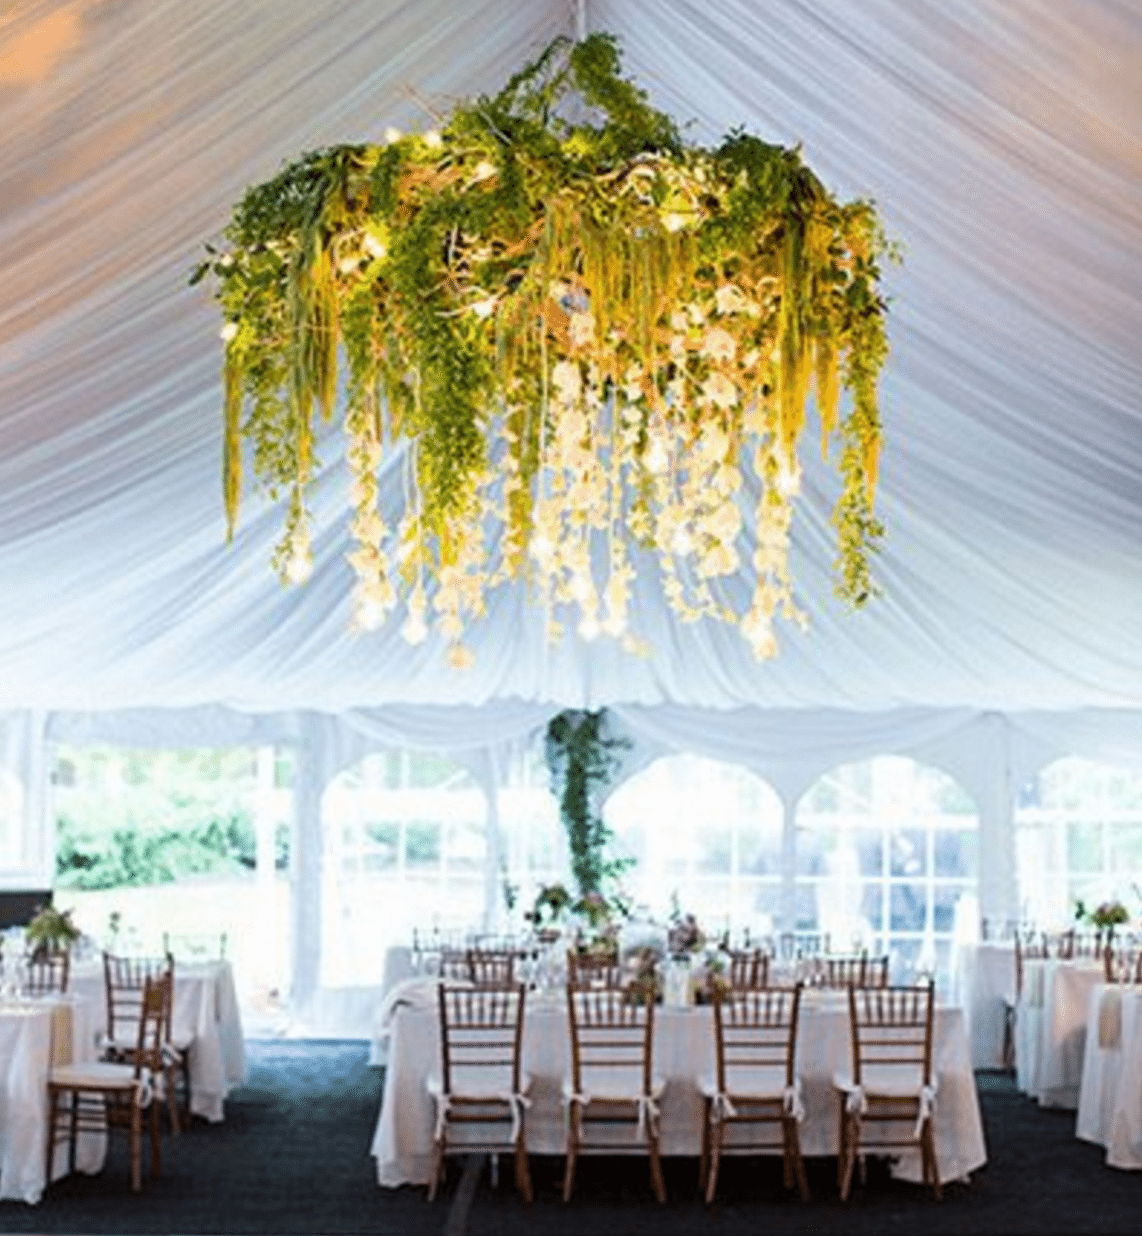 Ceiling Decor to Enhance Your Wedding- Sky\'s the Limit